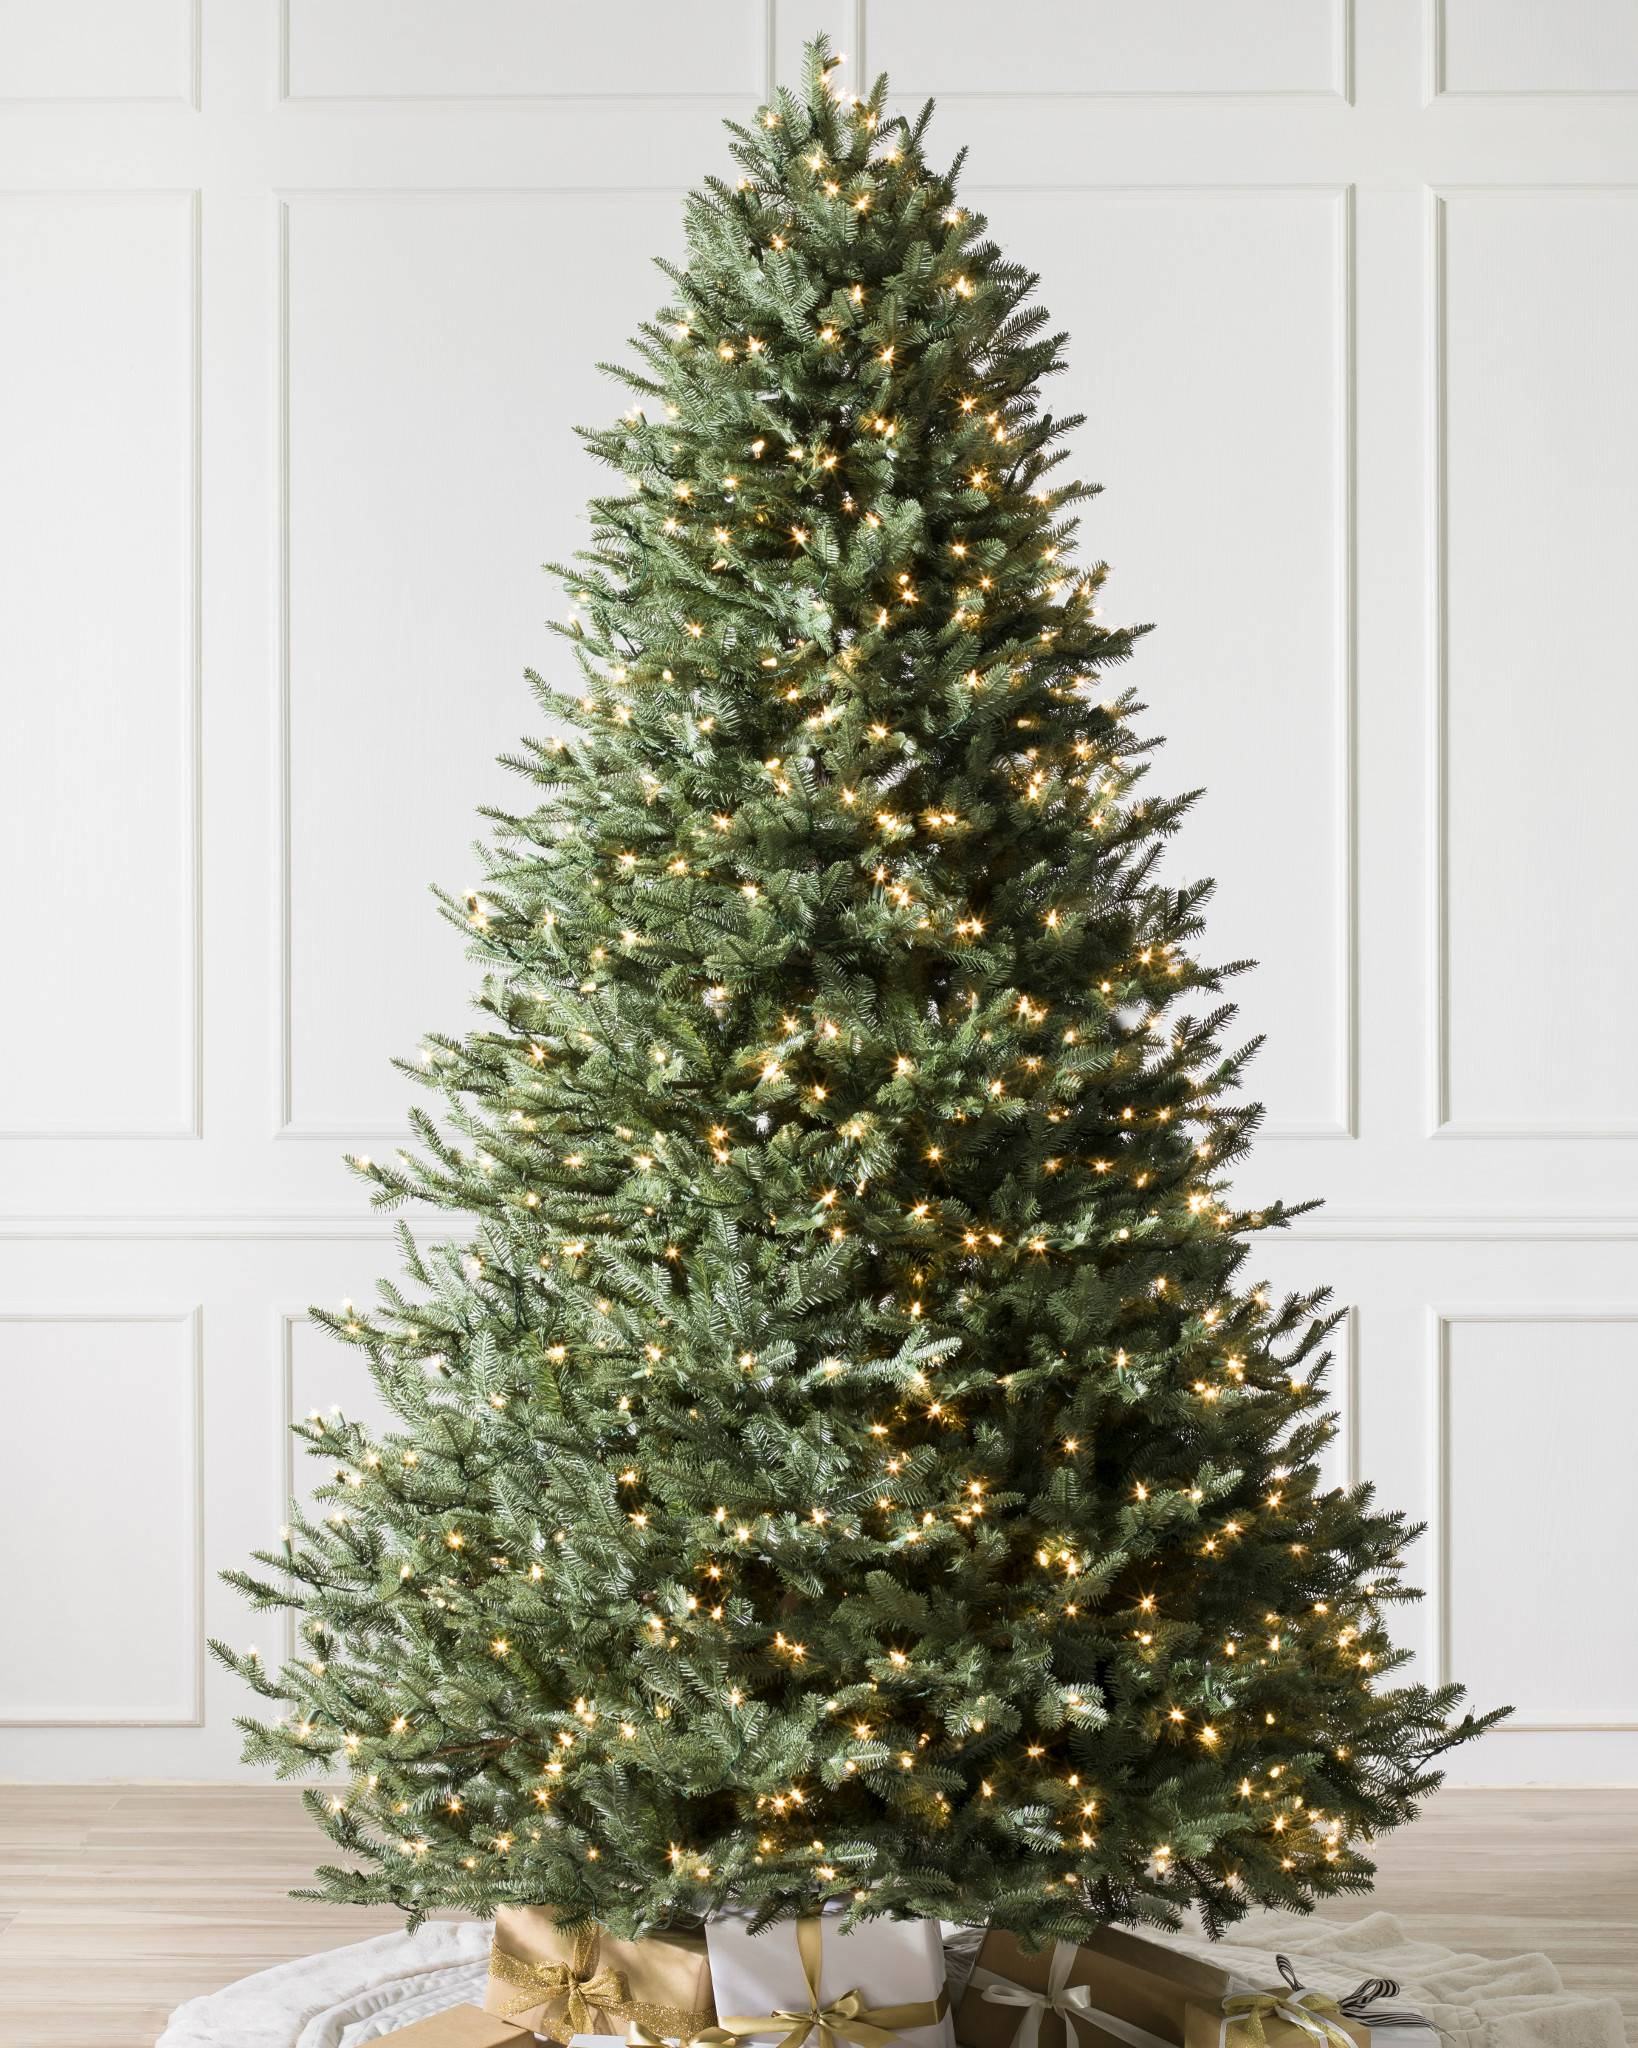 Balsam Hill Christmas Tree Co Reviews.Bh Balsam Fir Christmas Tree Balsam Hill